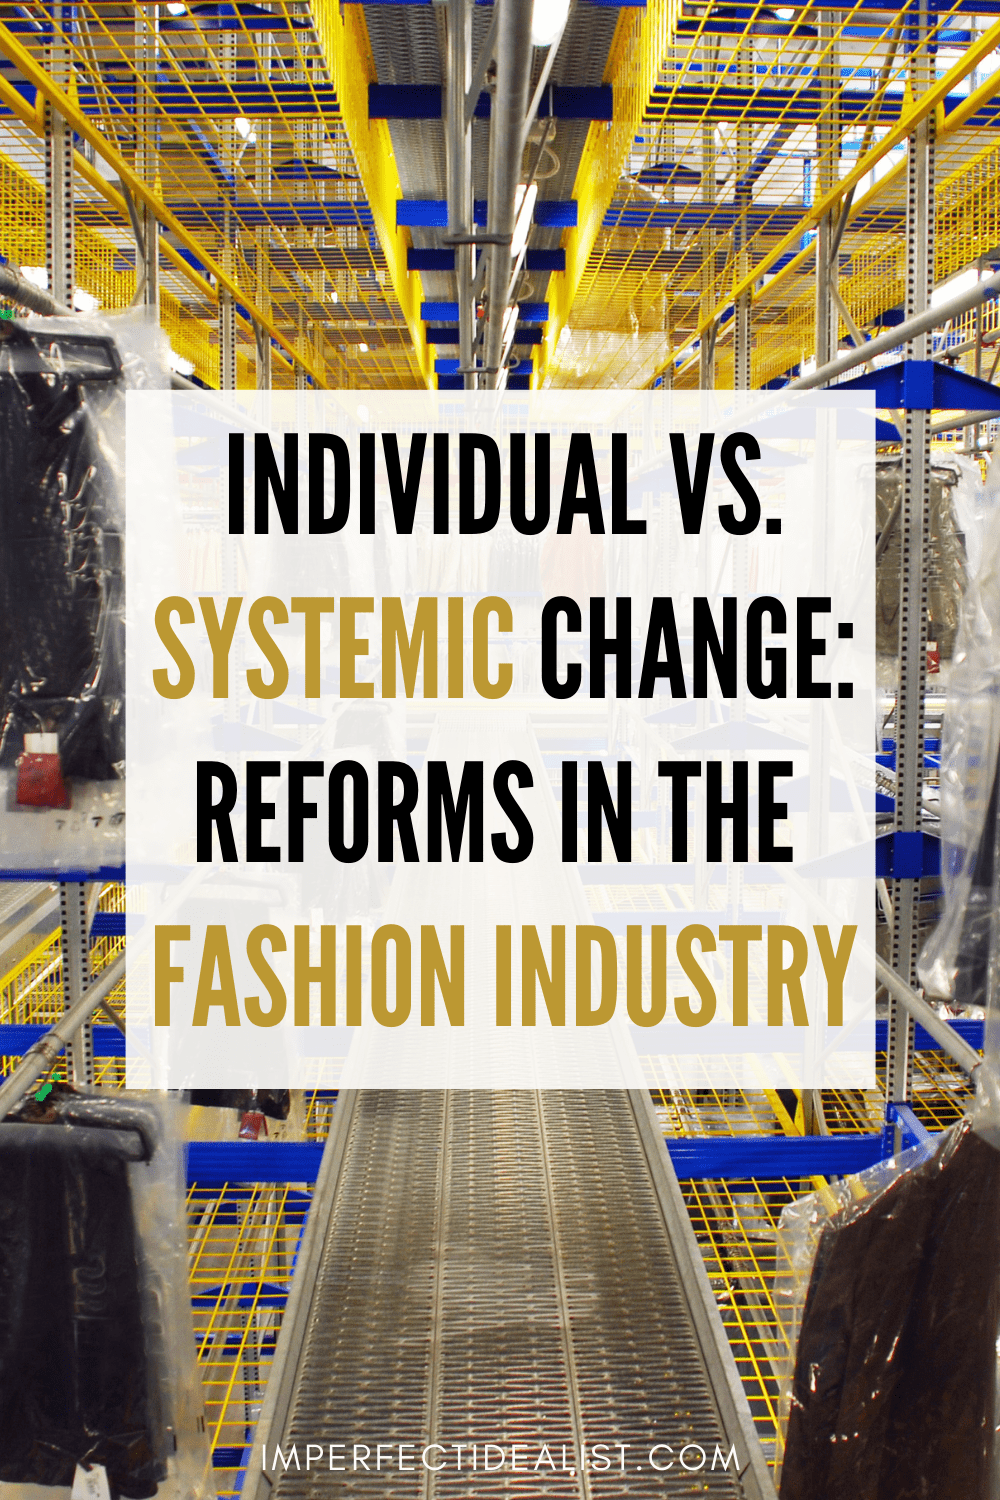 pinterest pin with a fashion warehouse in the background and the text 'individual vs. systemic change: reforms in the fashion industry' against a white rectangle on top of the image